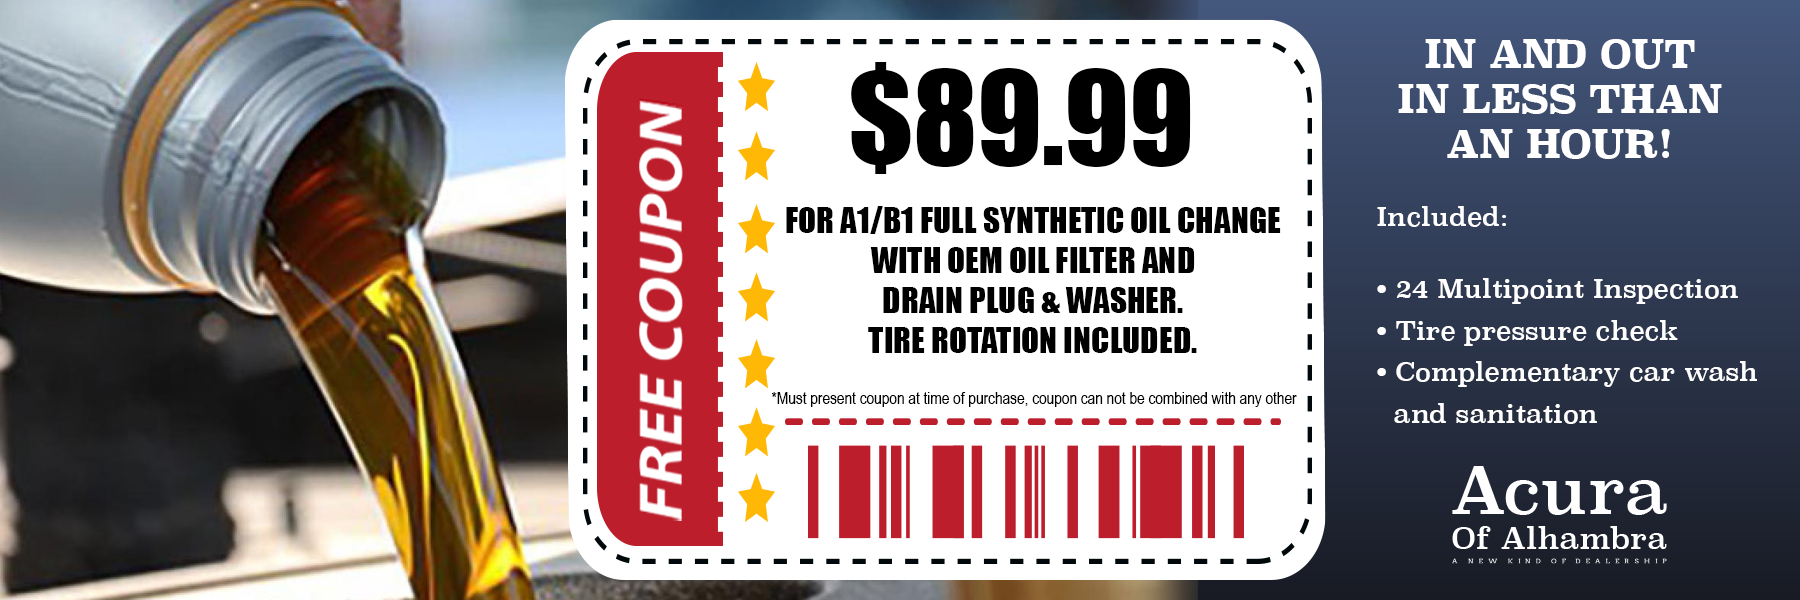 Web-Acura-Service-Oil-Change-Coupon